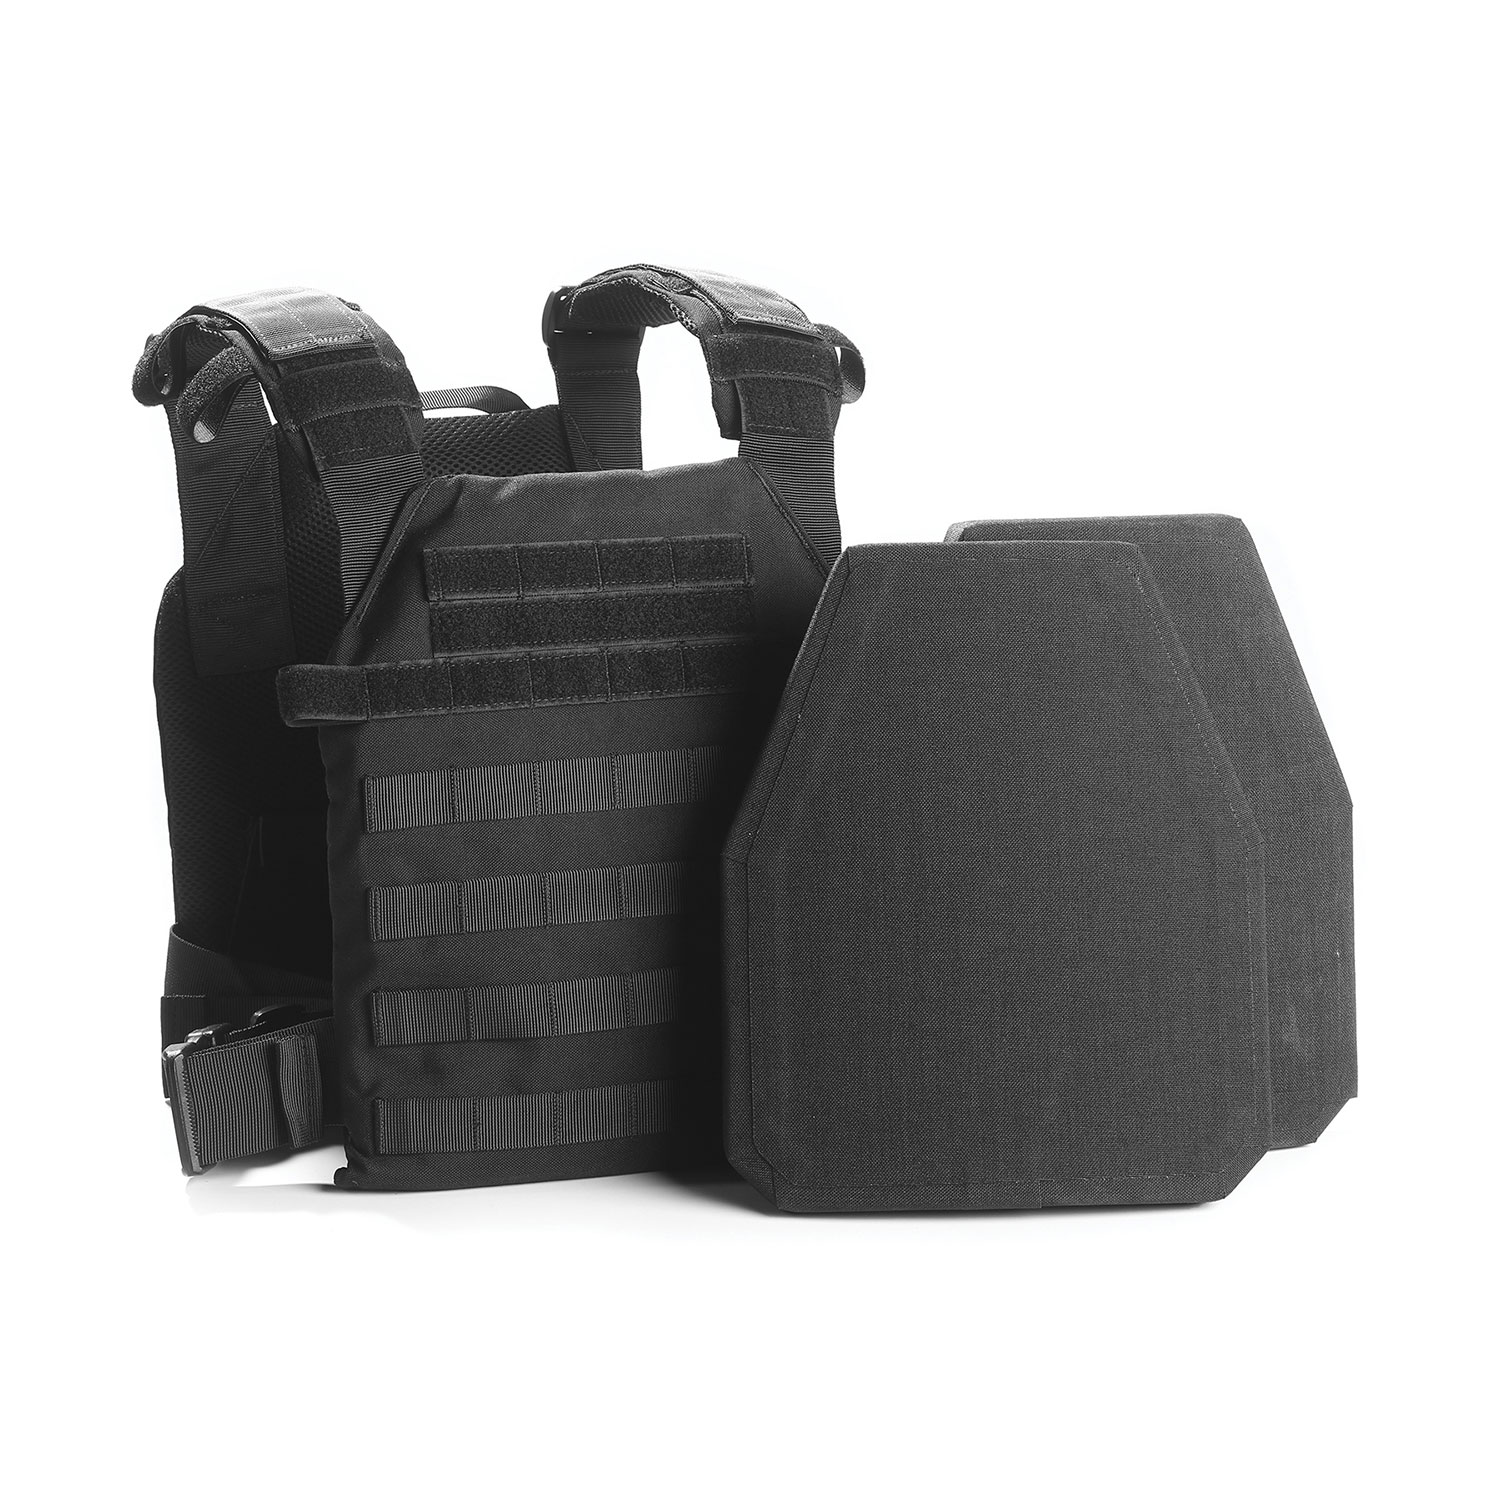 United Shield Lightweight Level III+ Active Shooter Kit